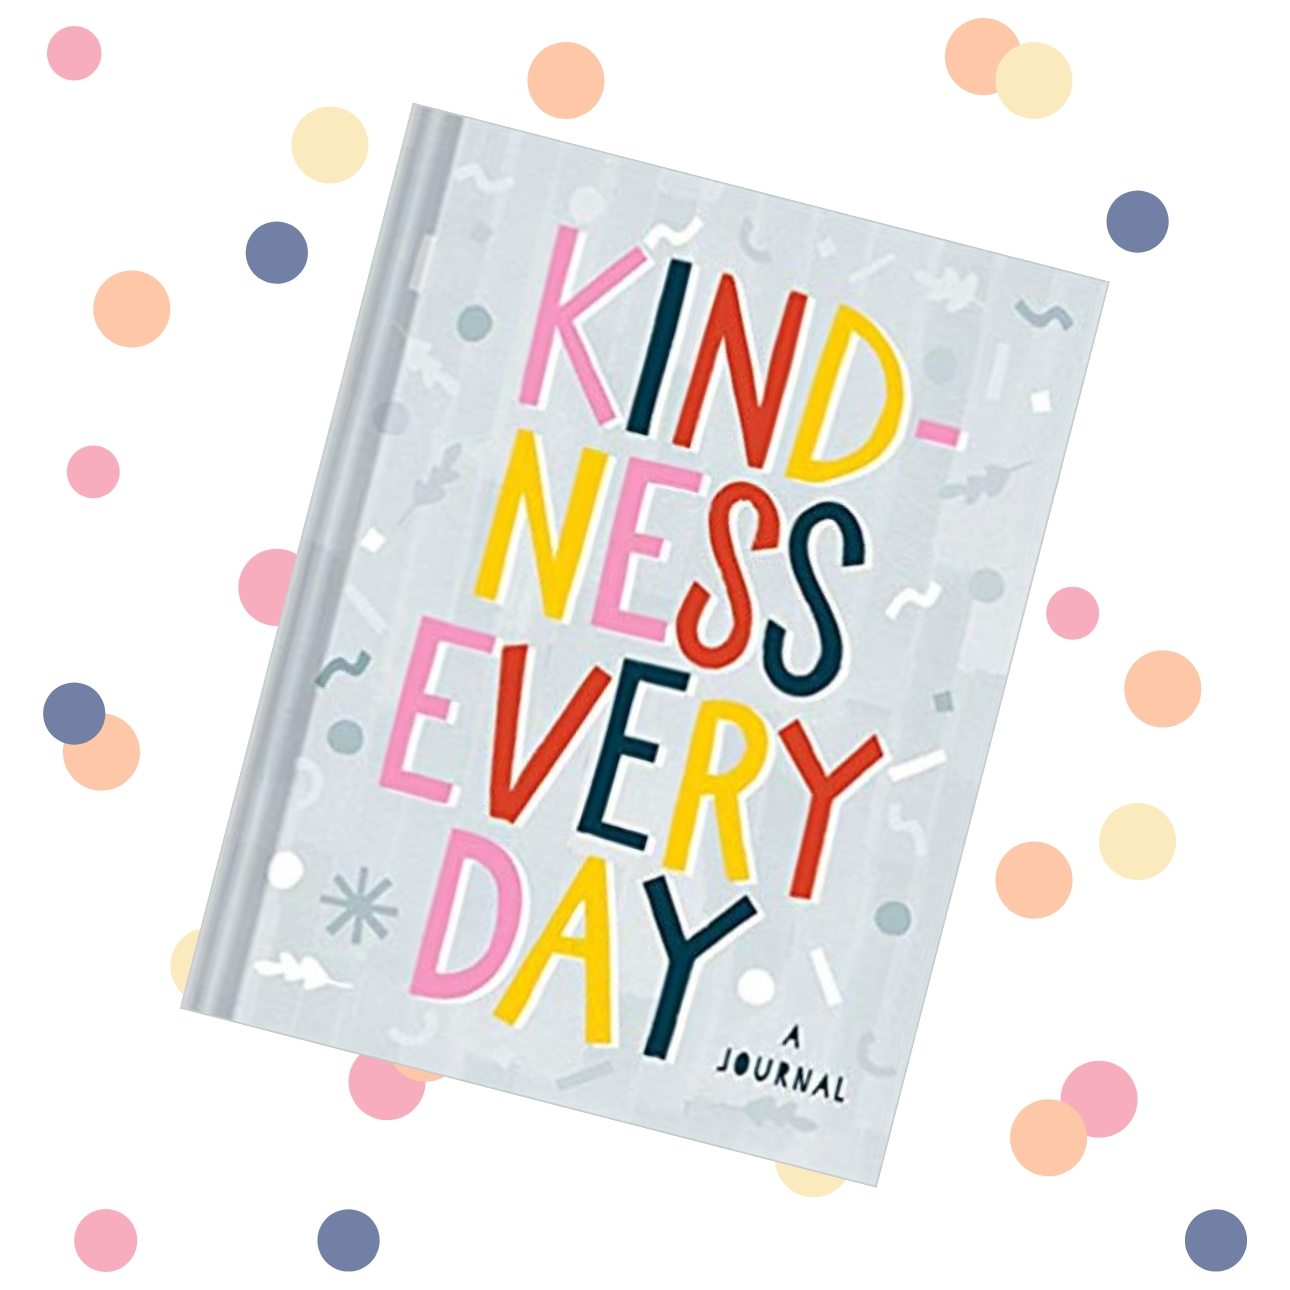 random acts of kindness dagboeken - kindness every day